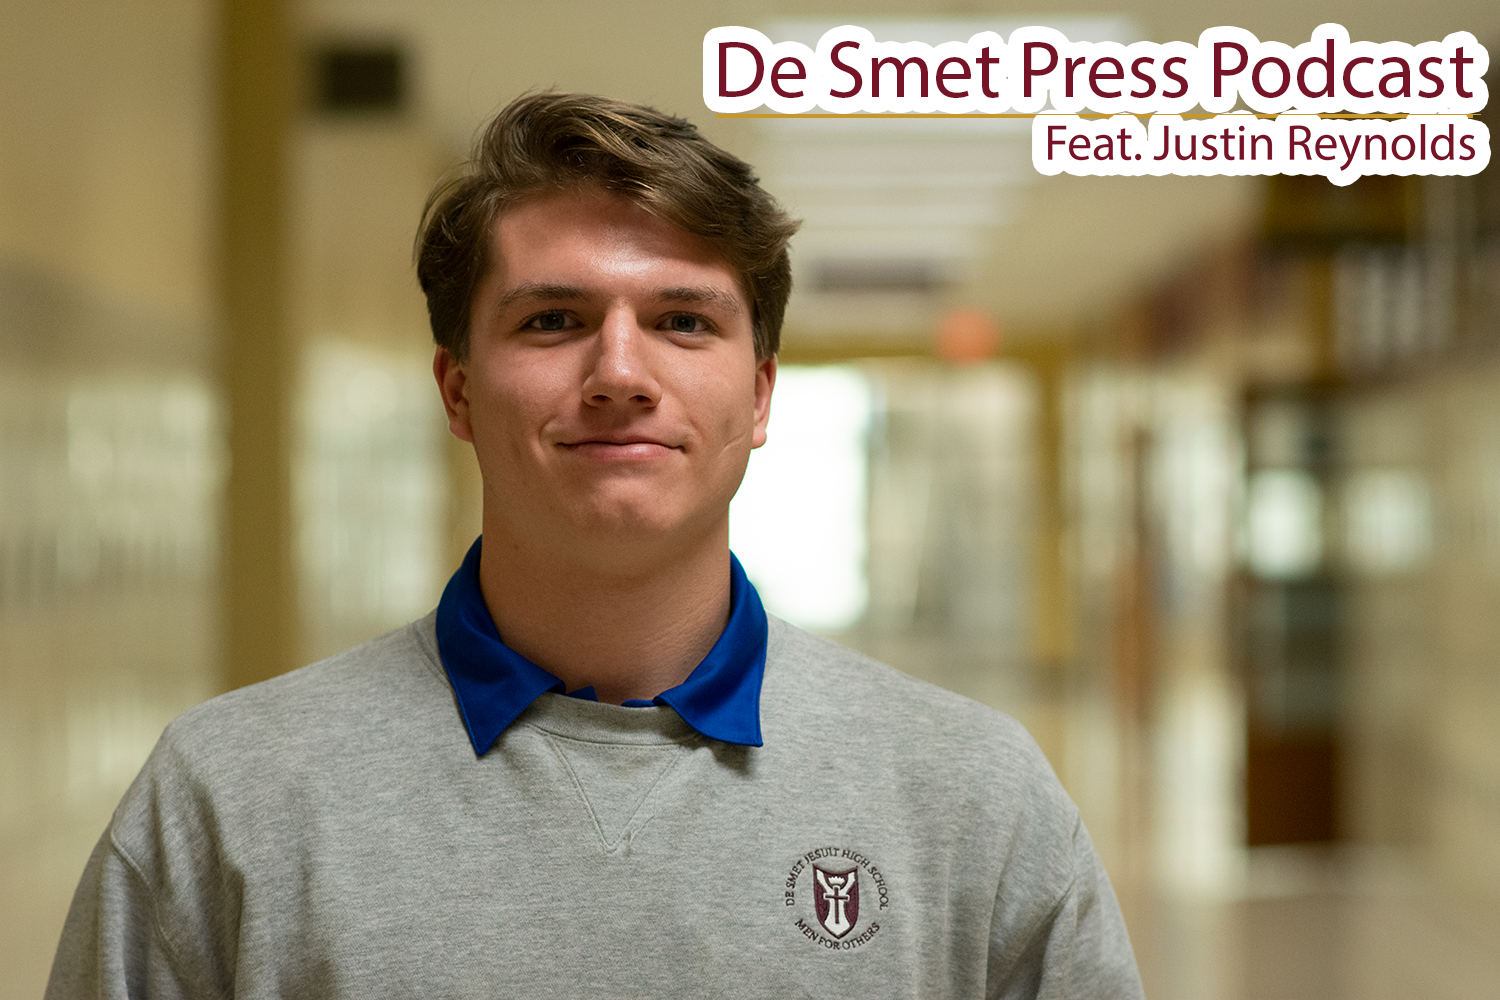 Chatting with De Smet Student Body President, Justin Reynolds, about his senior year.